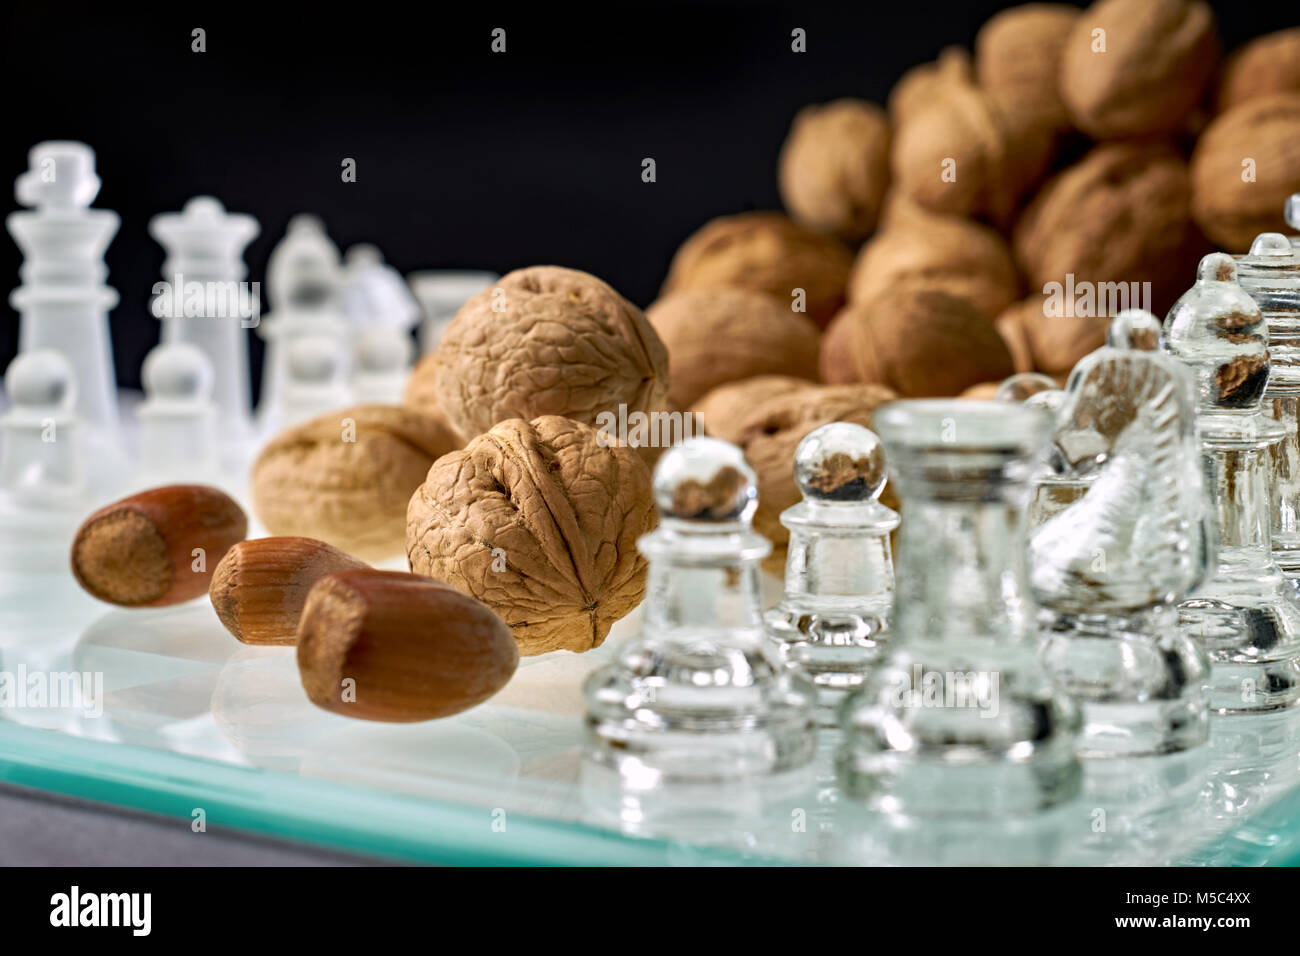 Nuts improve brain efficiency (visualization) - chess, chessboard with nuts - Stock Image